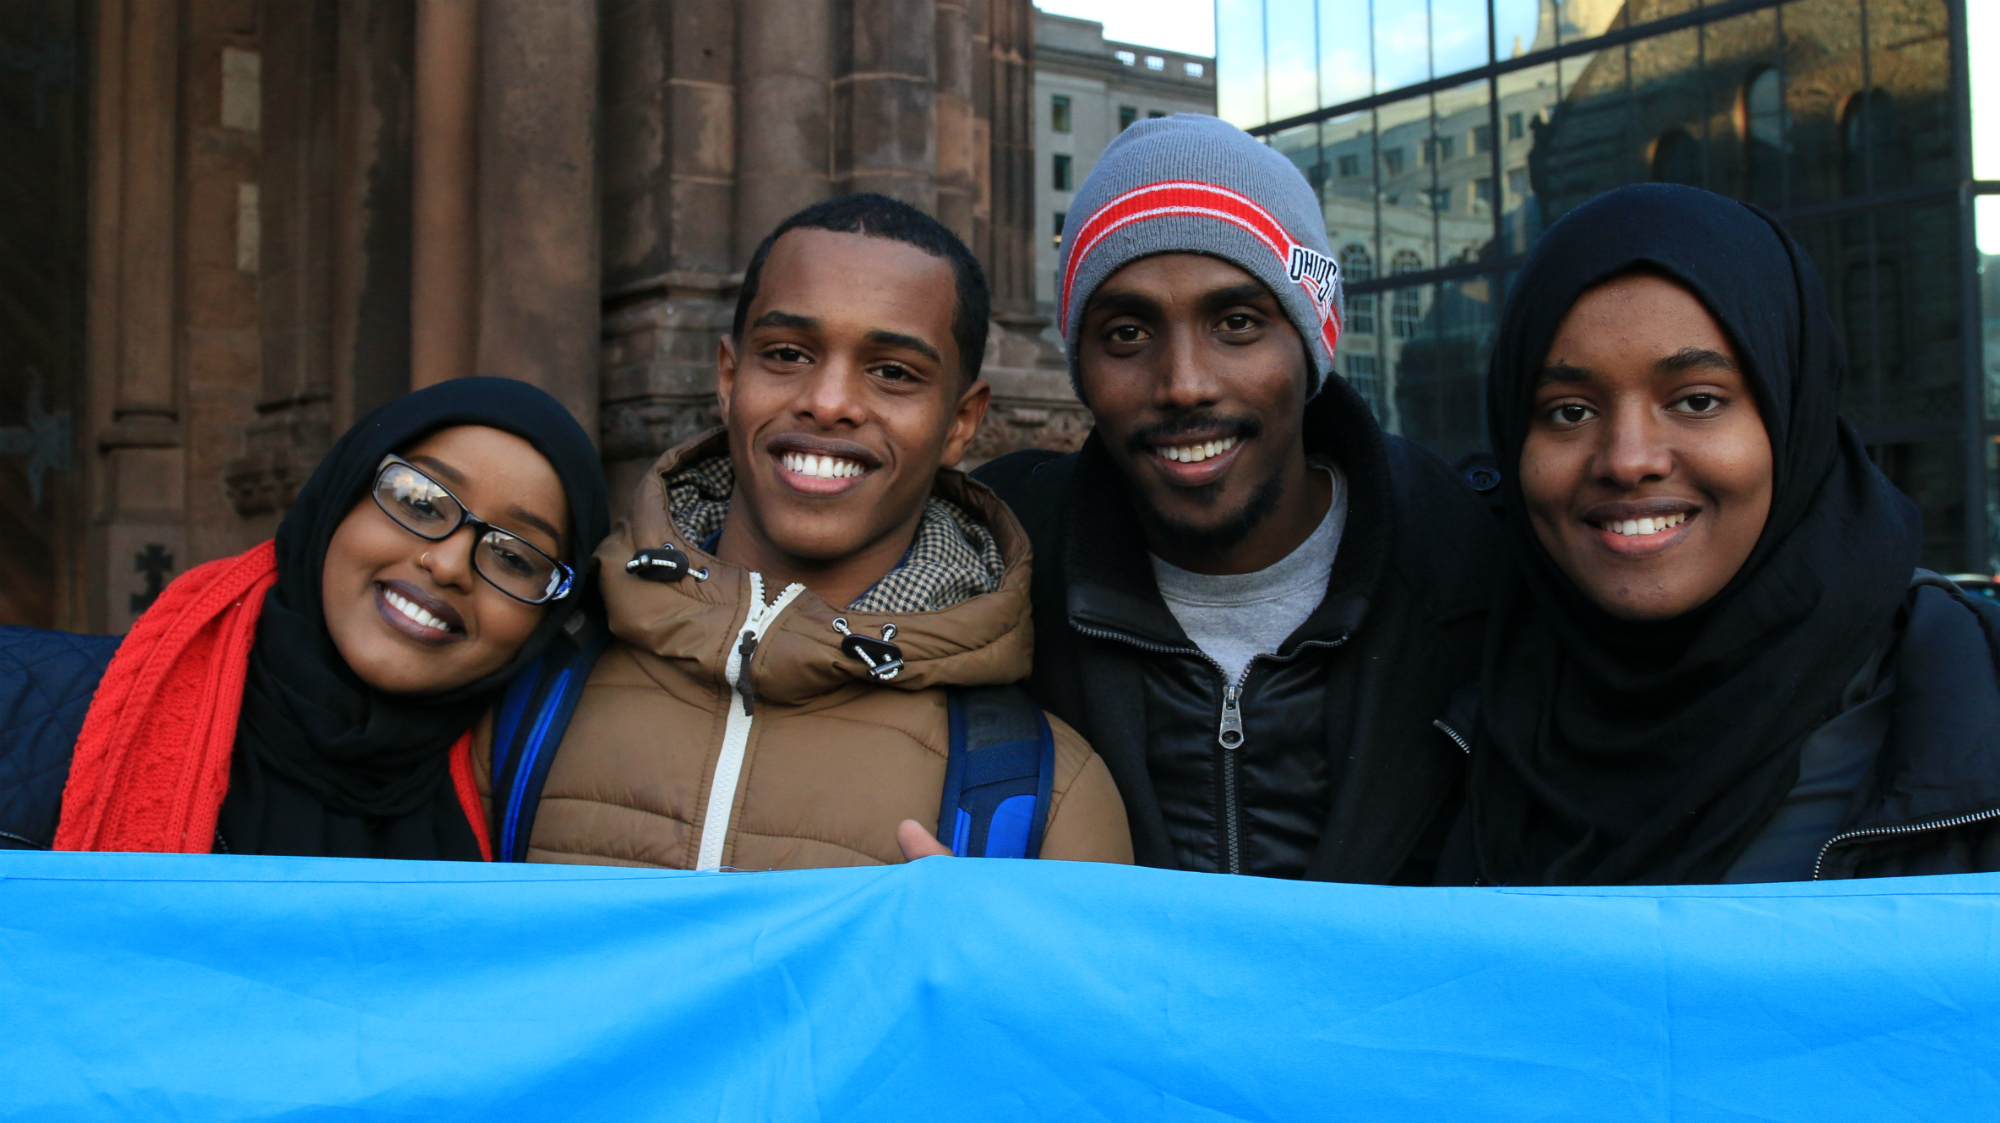 """Hibo Moallim (left) was born in Kenya, but her family is originally from Somalia, one of the seven majority-Muslim countries affected by Trump's ban. During a protest in Boston's Copley Square, she and her cousins led the crowd singing """"This is what the democracy looks like,"""" and other chants. """"This ban goes against everything America stands for,"""" she said. (Photo by Giulia Afiune/GroundTruth)"""